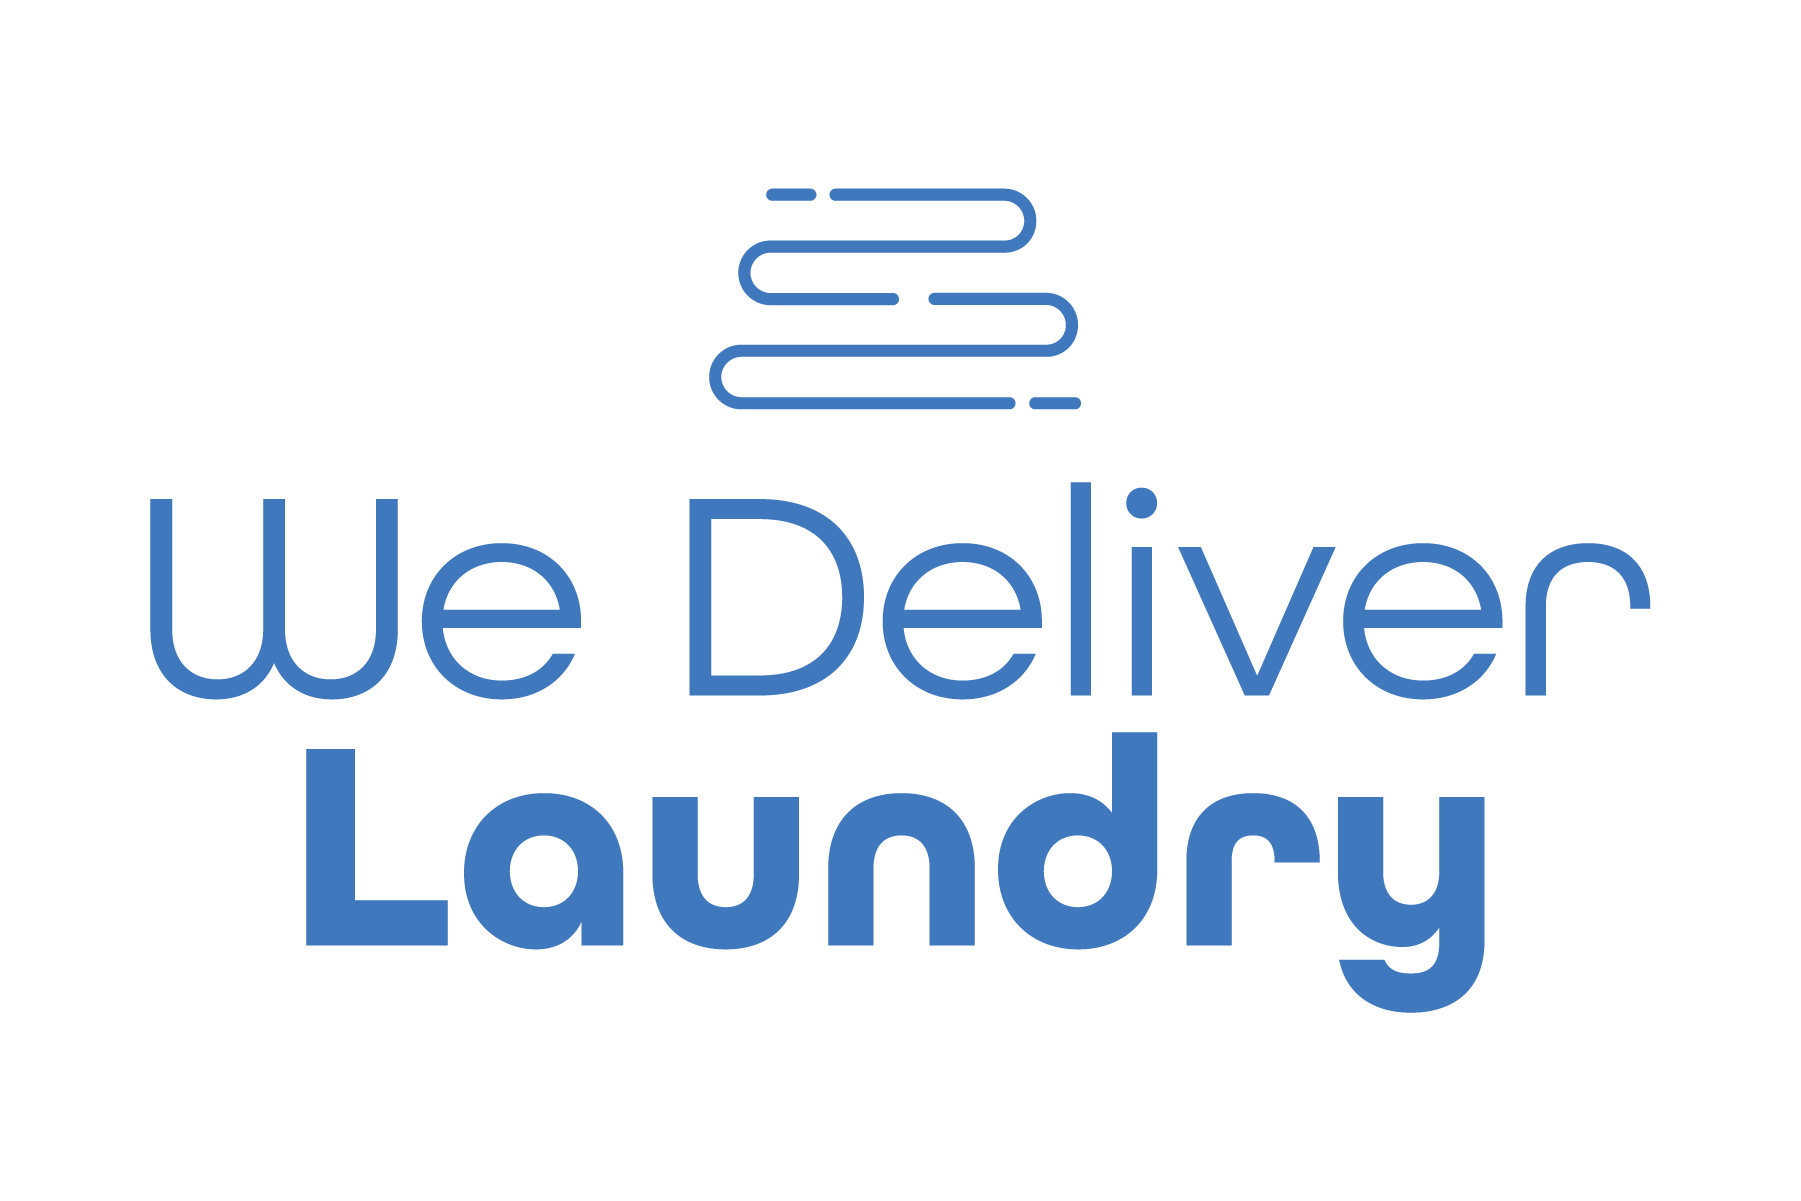 we delivery laundry service logo